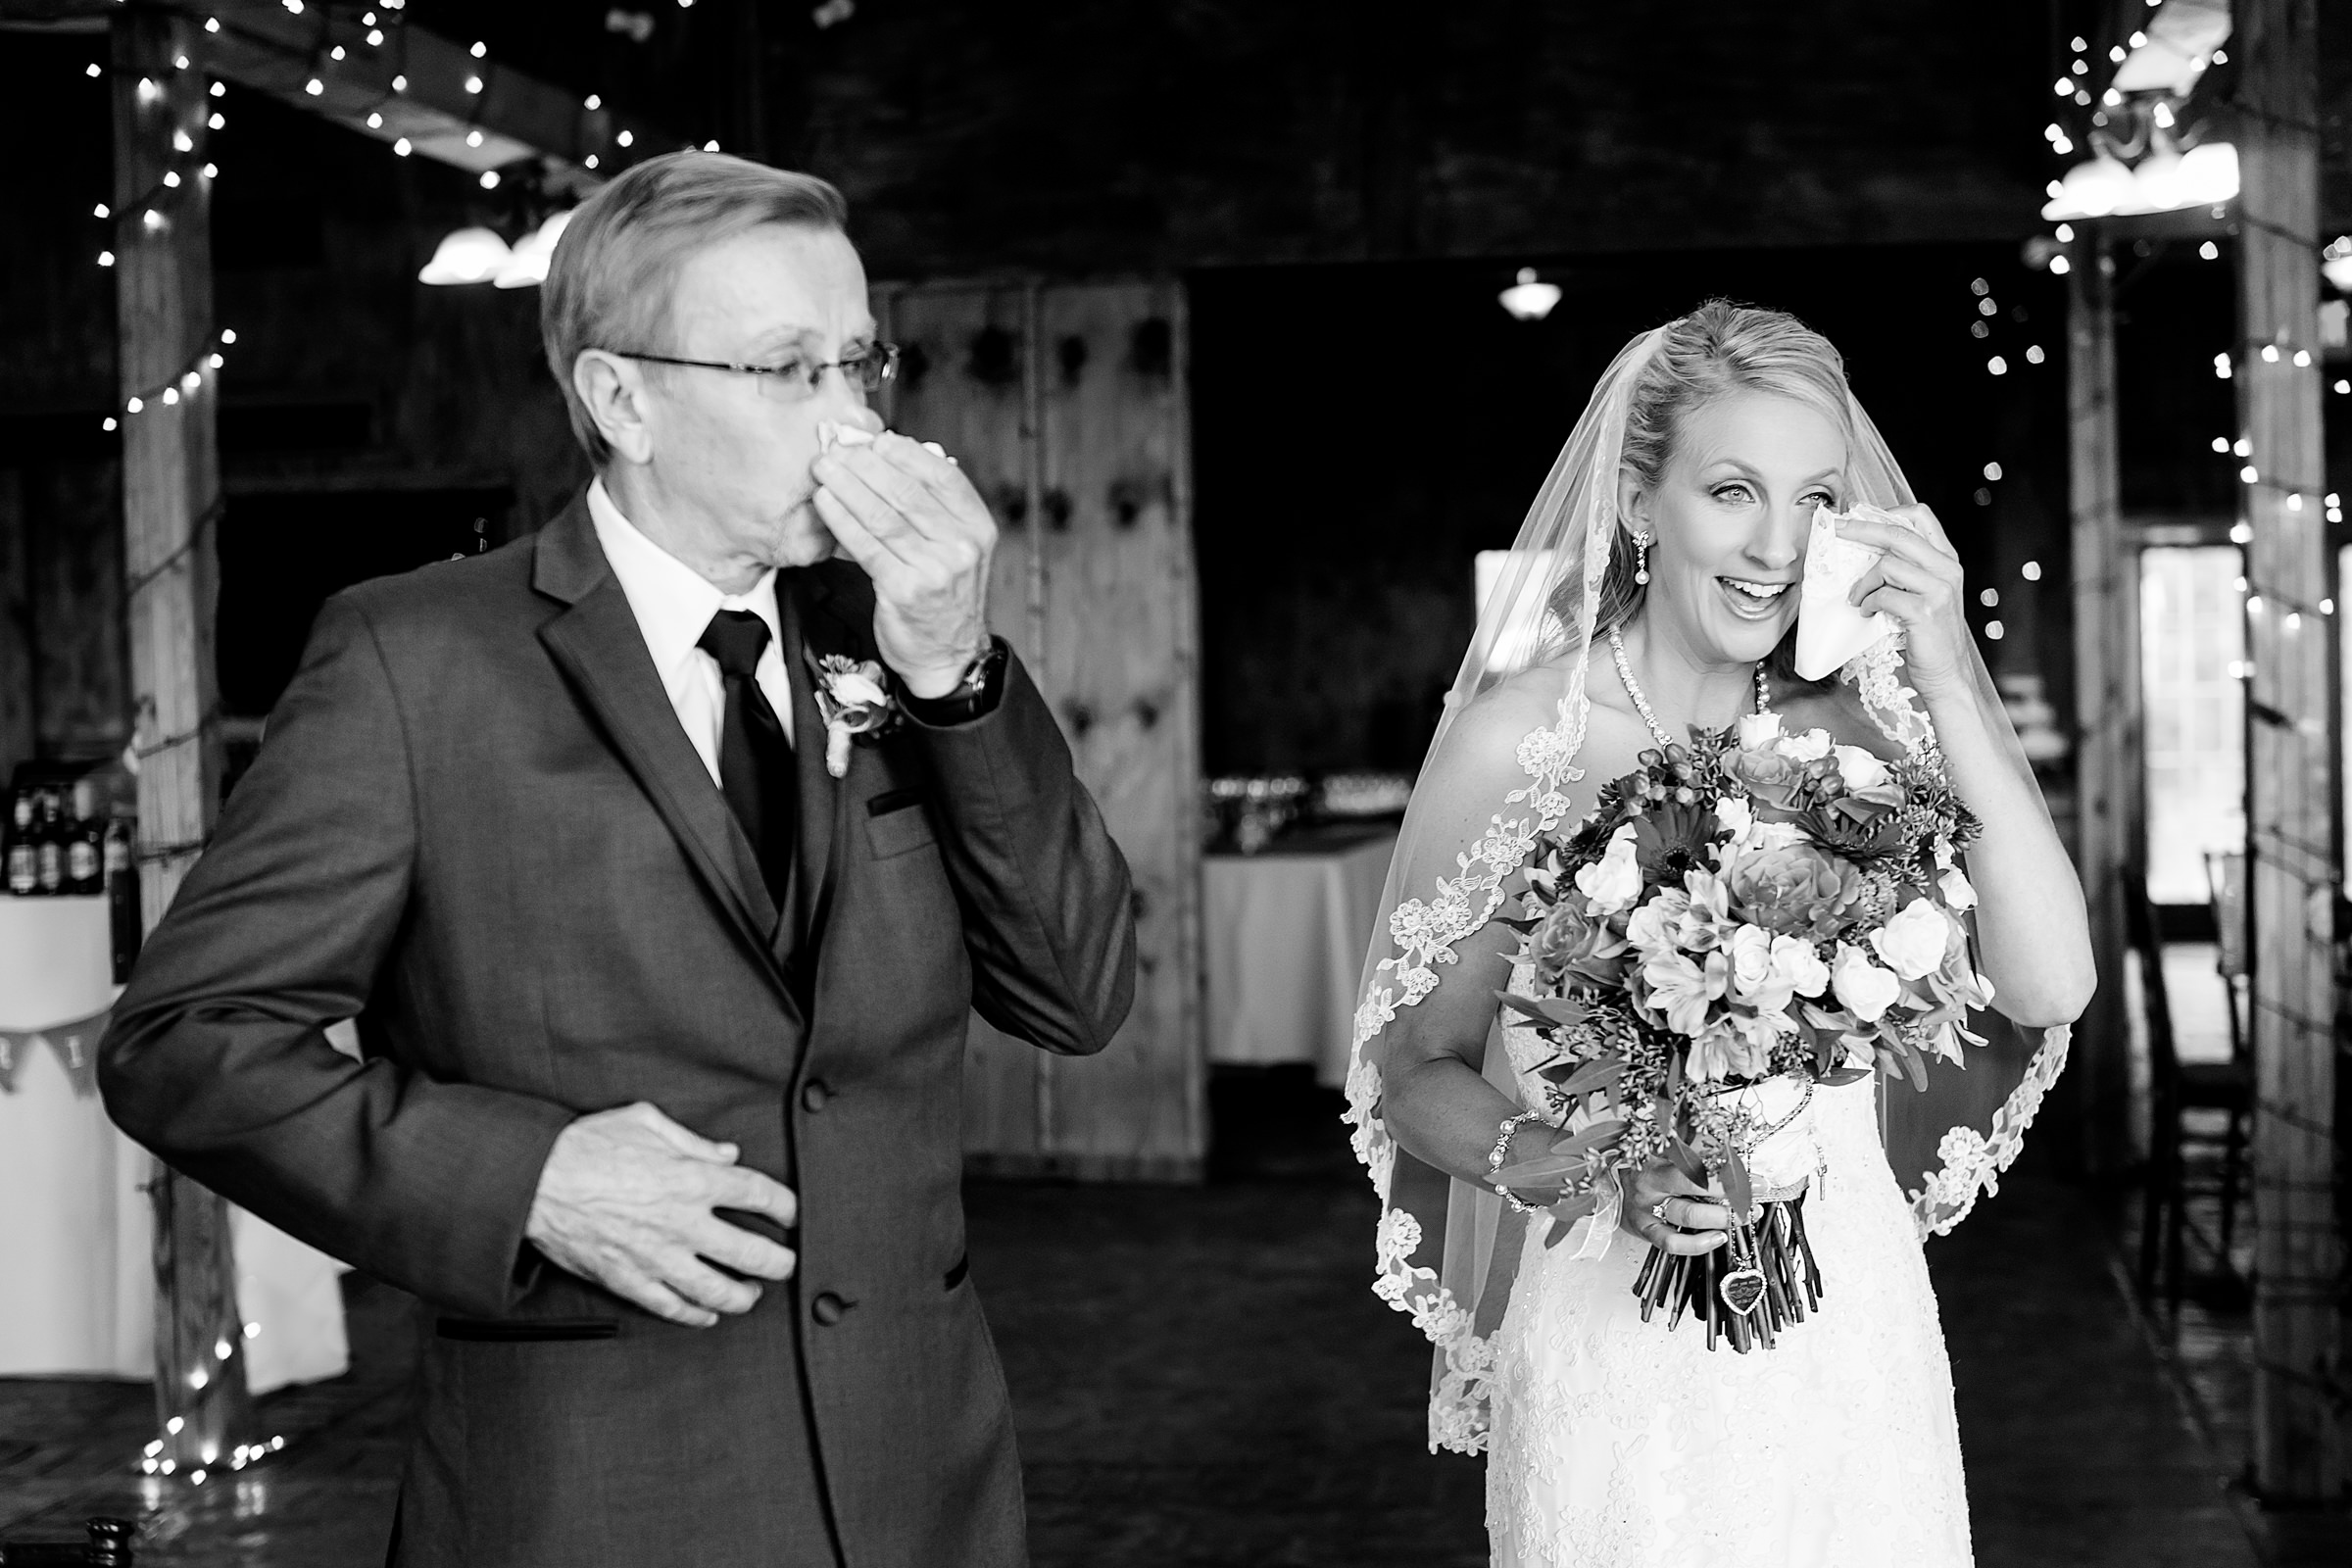 Tearful moment for bride and father - photo by Procopio Photography